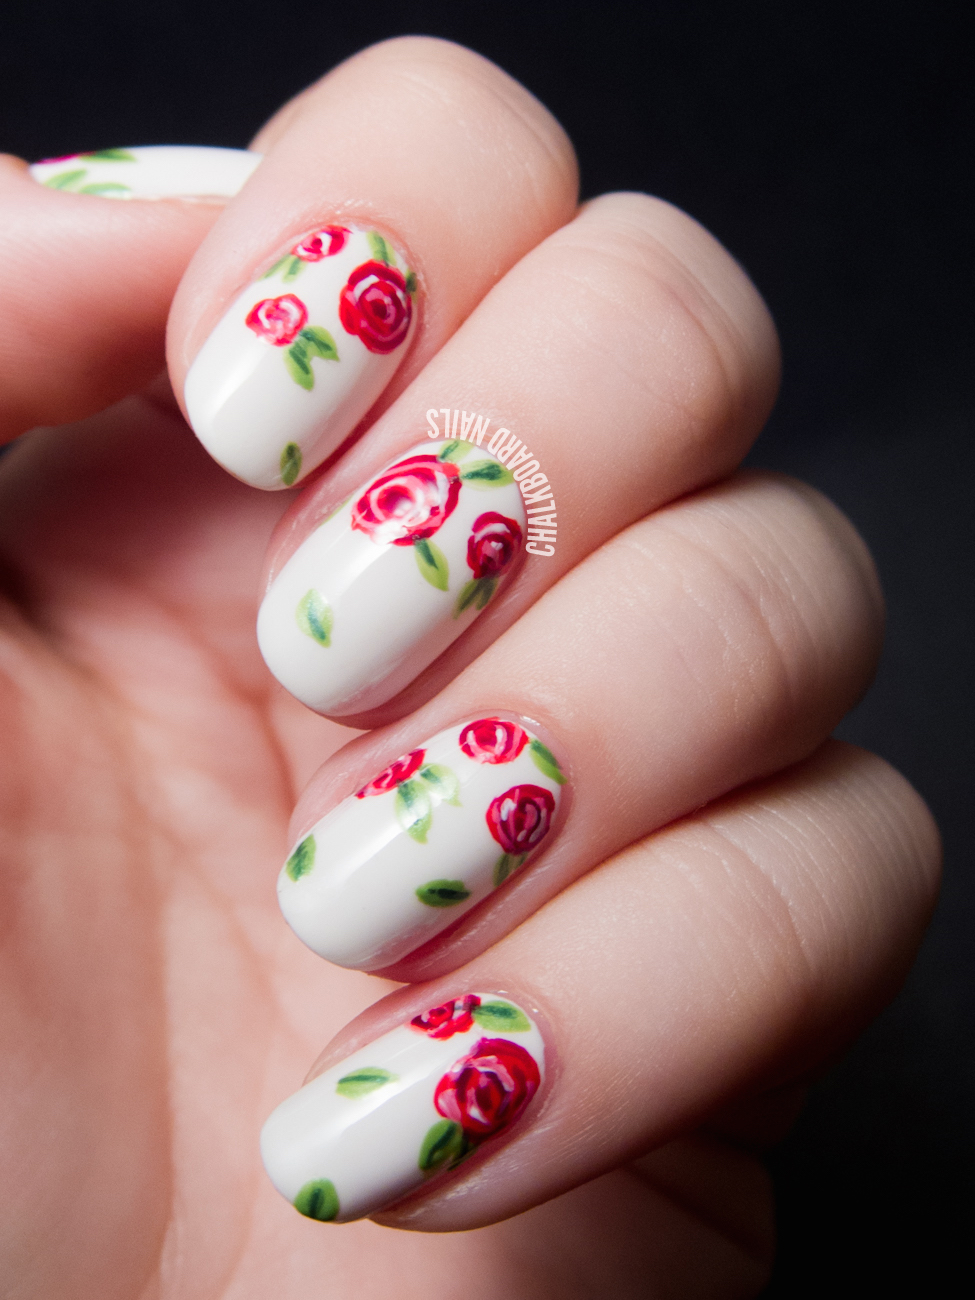 - Beautiful Nail Designs For Weddings - Bridal Nail Art Ideas